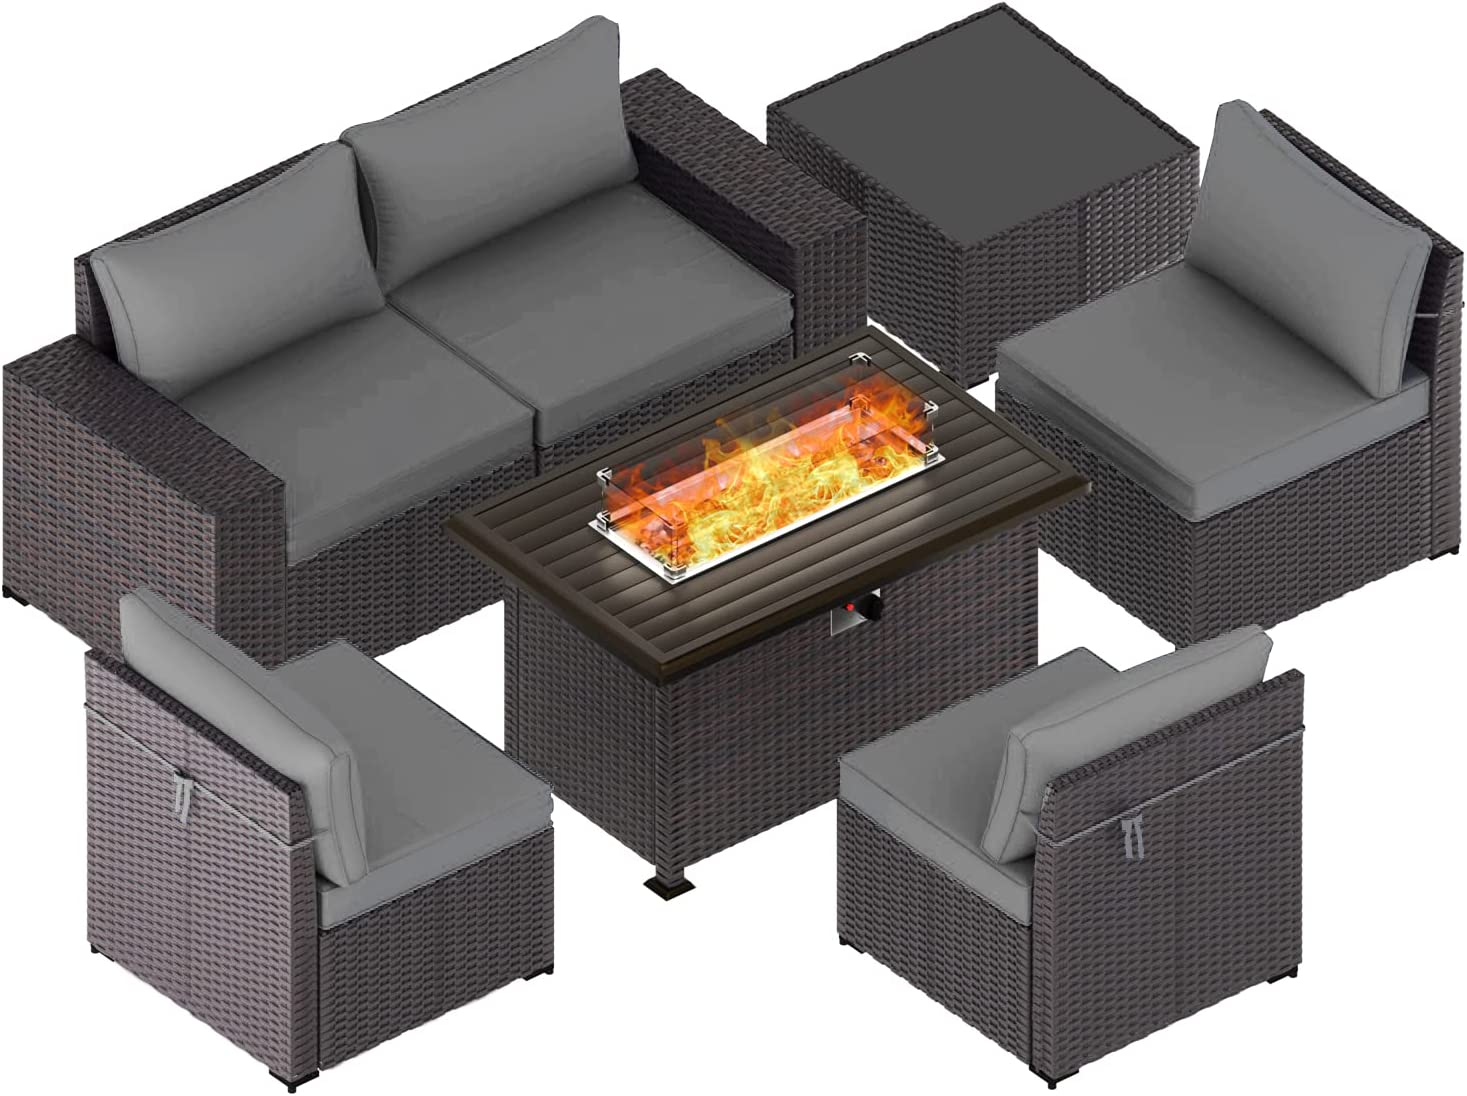 Kullavik 7 Pieces Outdoor Great interest Patio Gas Low price with Furniture Propane Fire